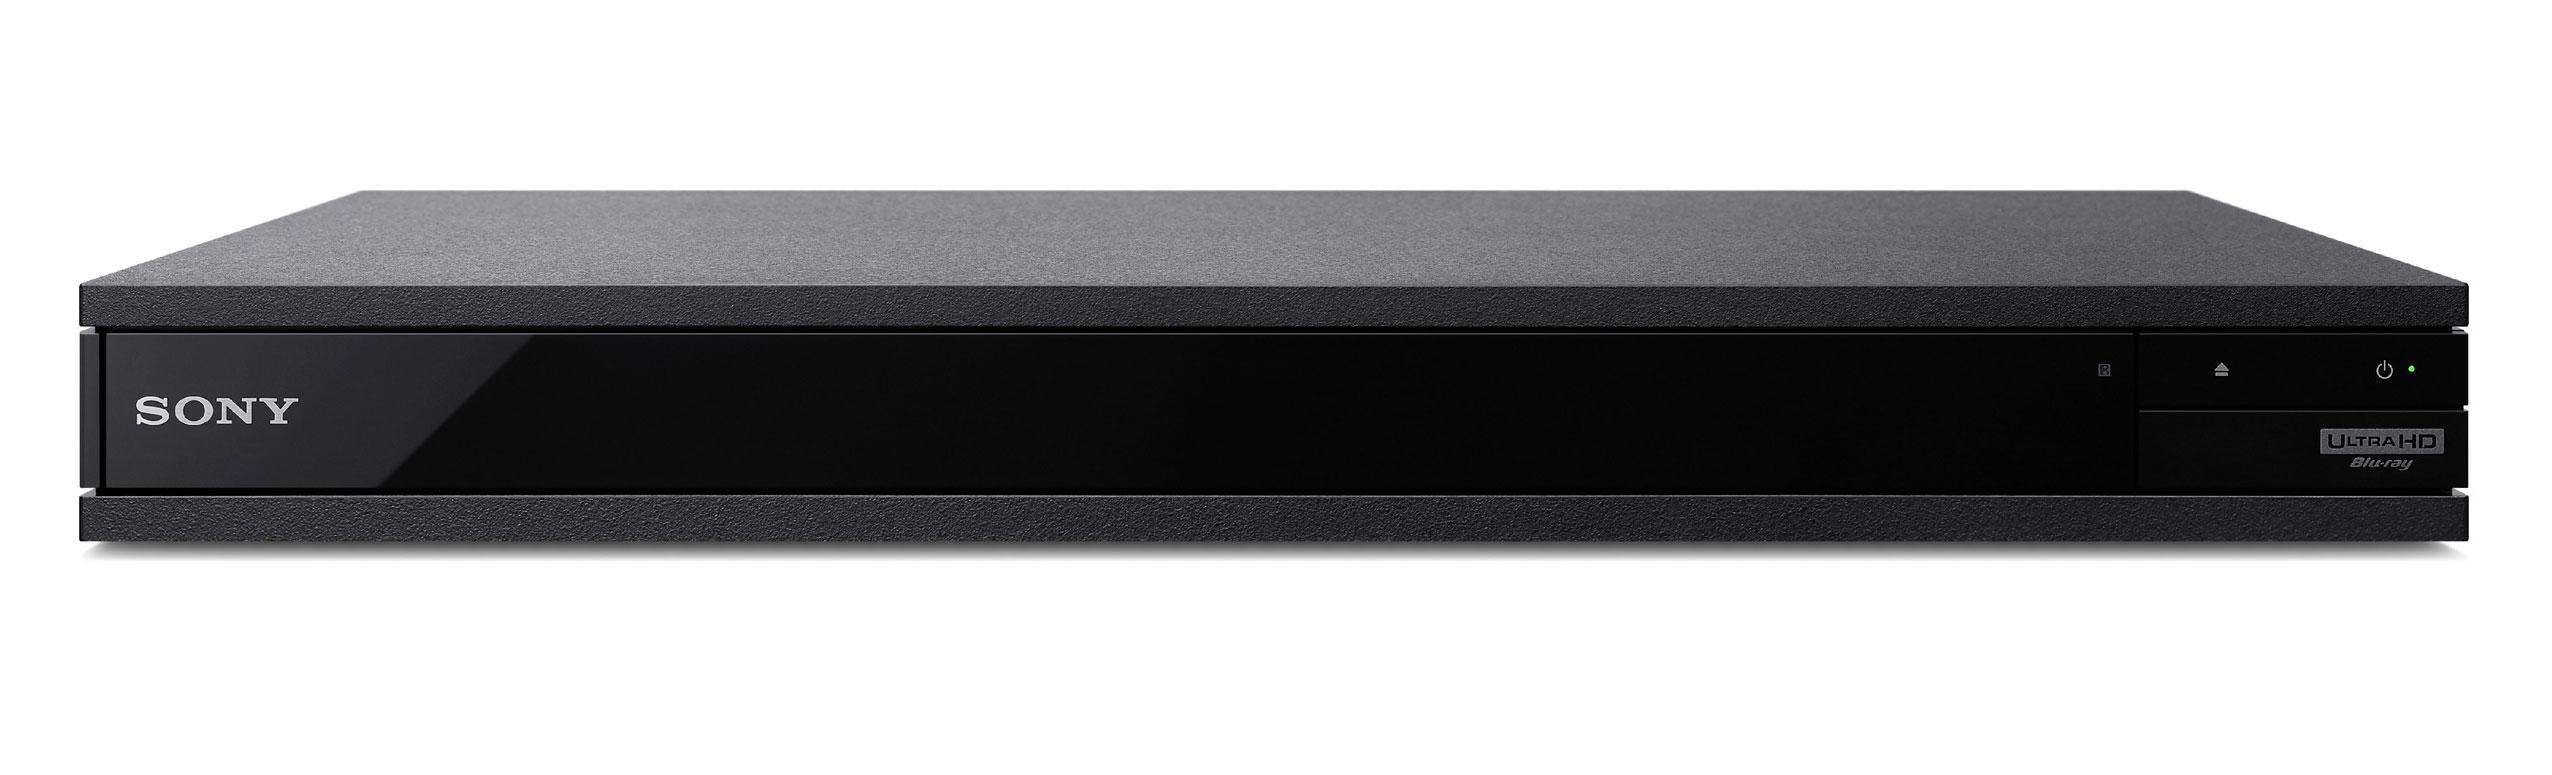 sony-4k-blu-ray-player-UBP-X800_Front2-large